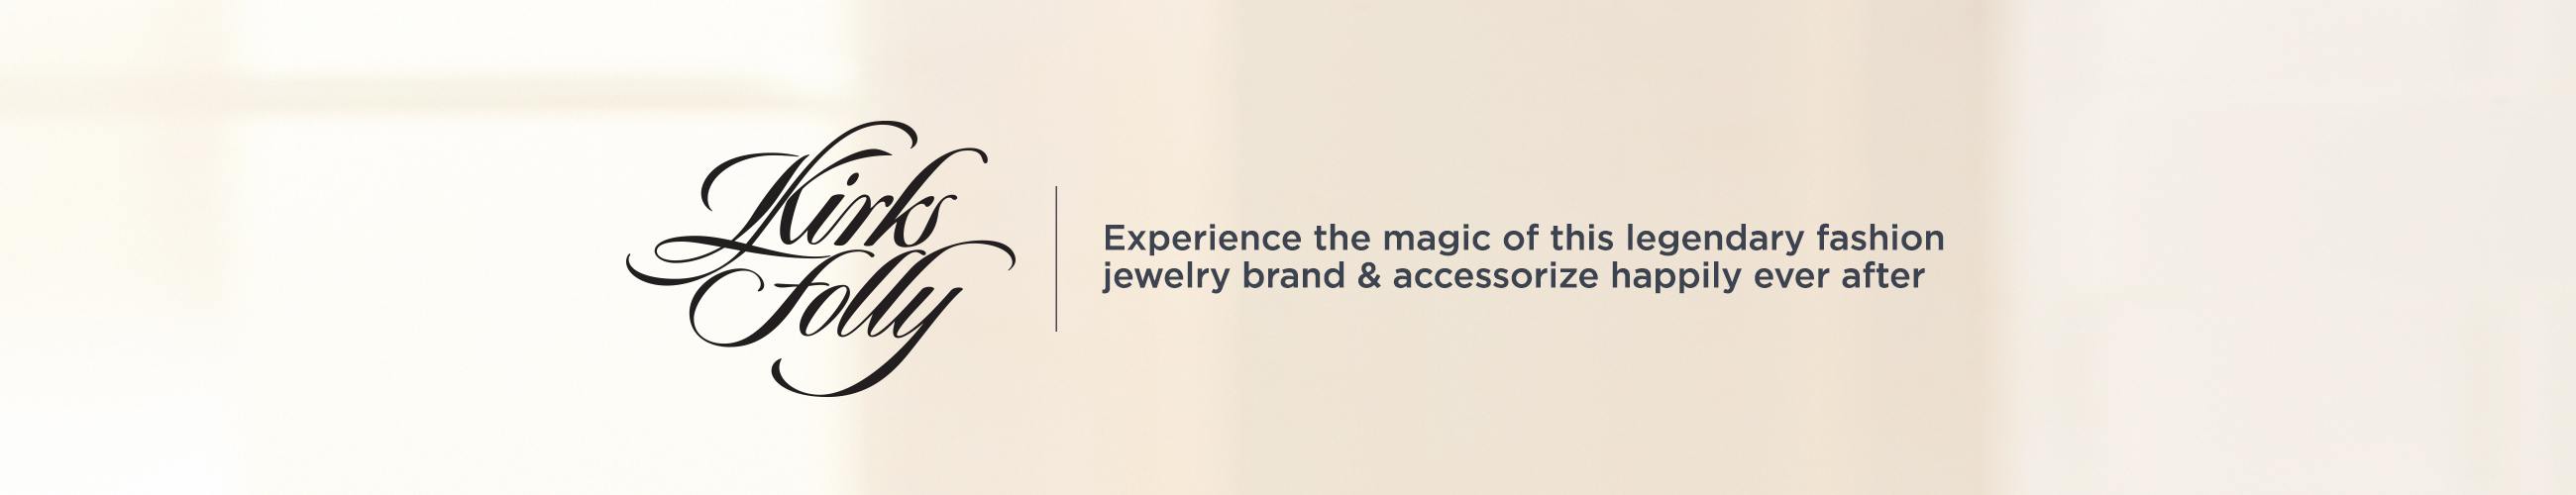 Kirks Folly. Experience the magic of this legendary fashion jewelry brand & accessorize happily ever after